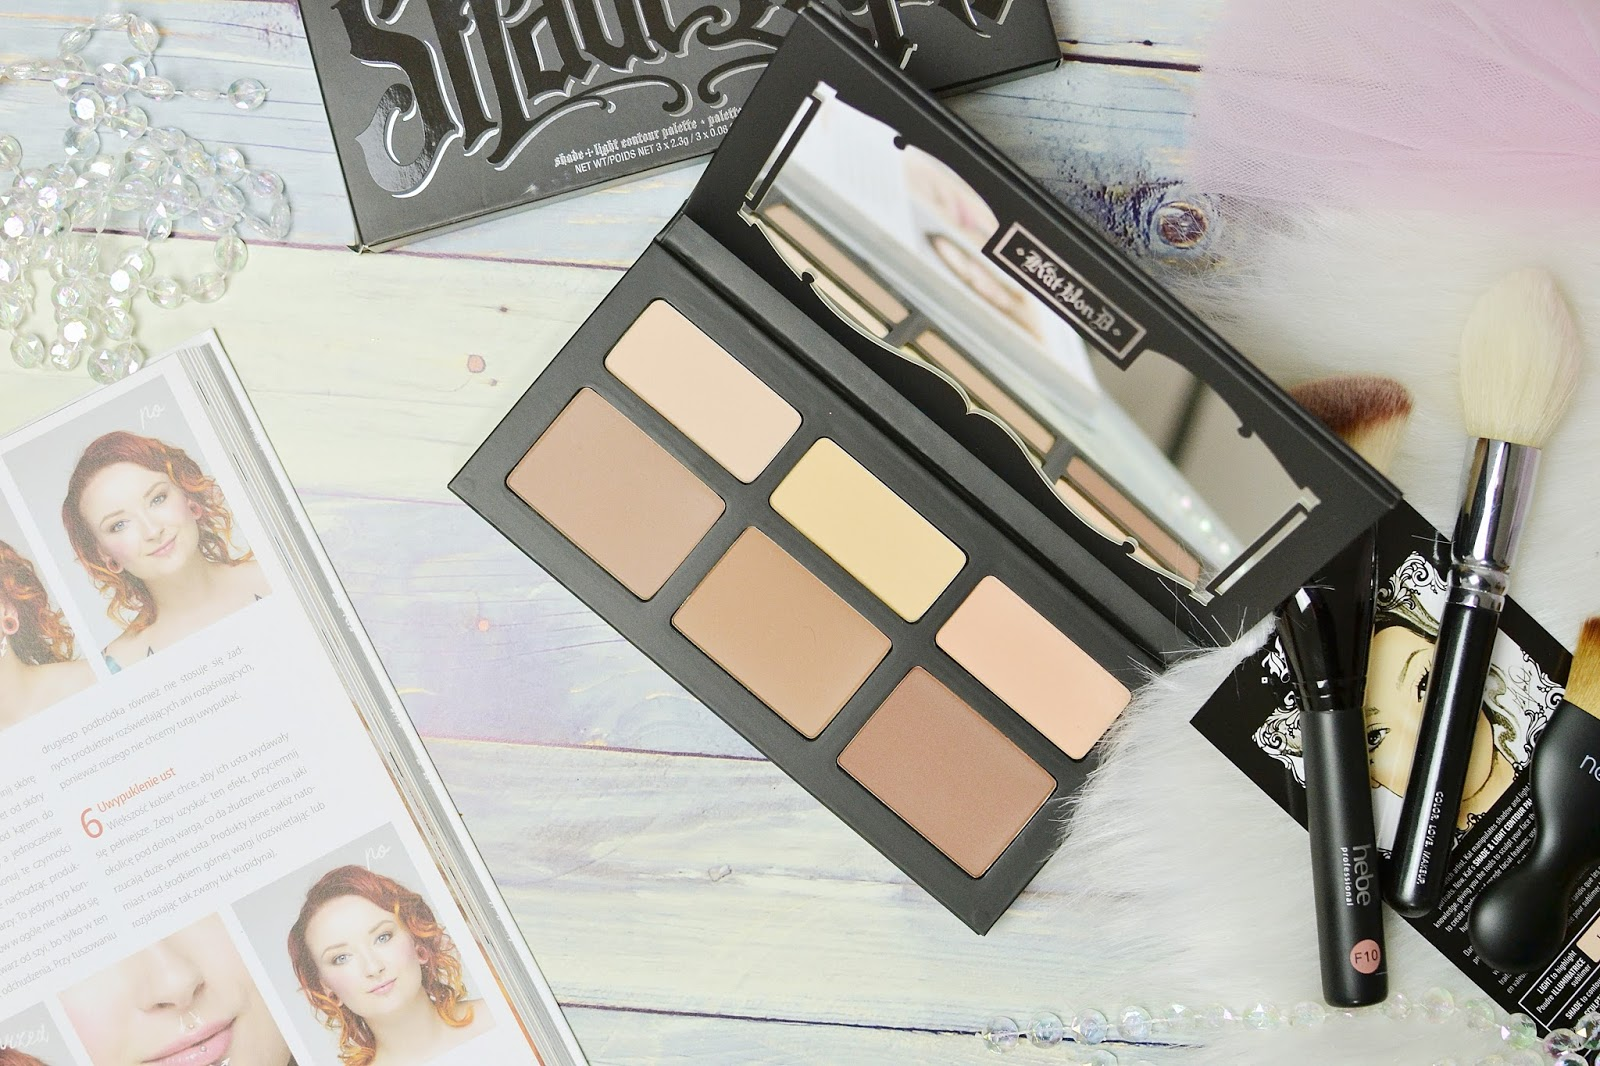 KAT VON D SHADE + LIGHT CONTOUR